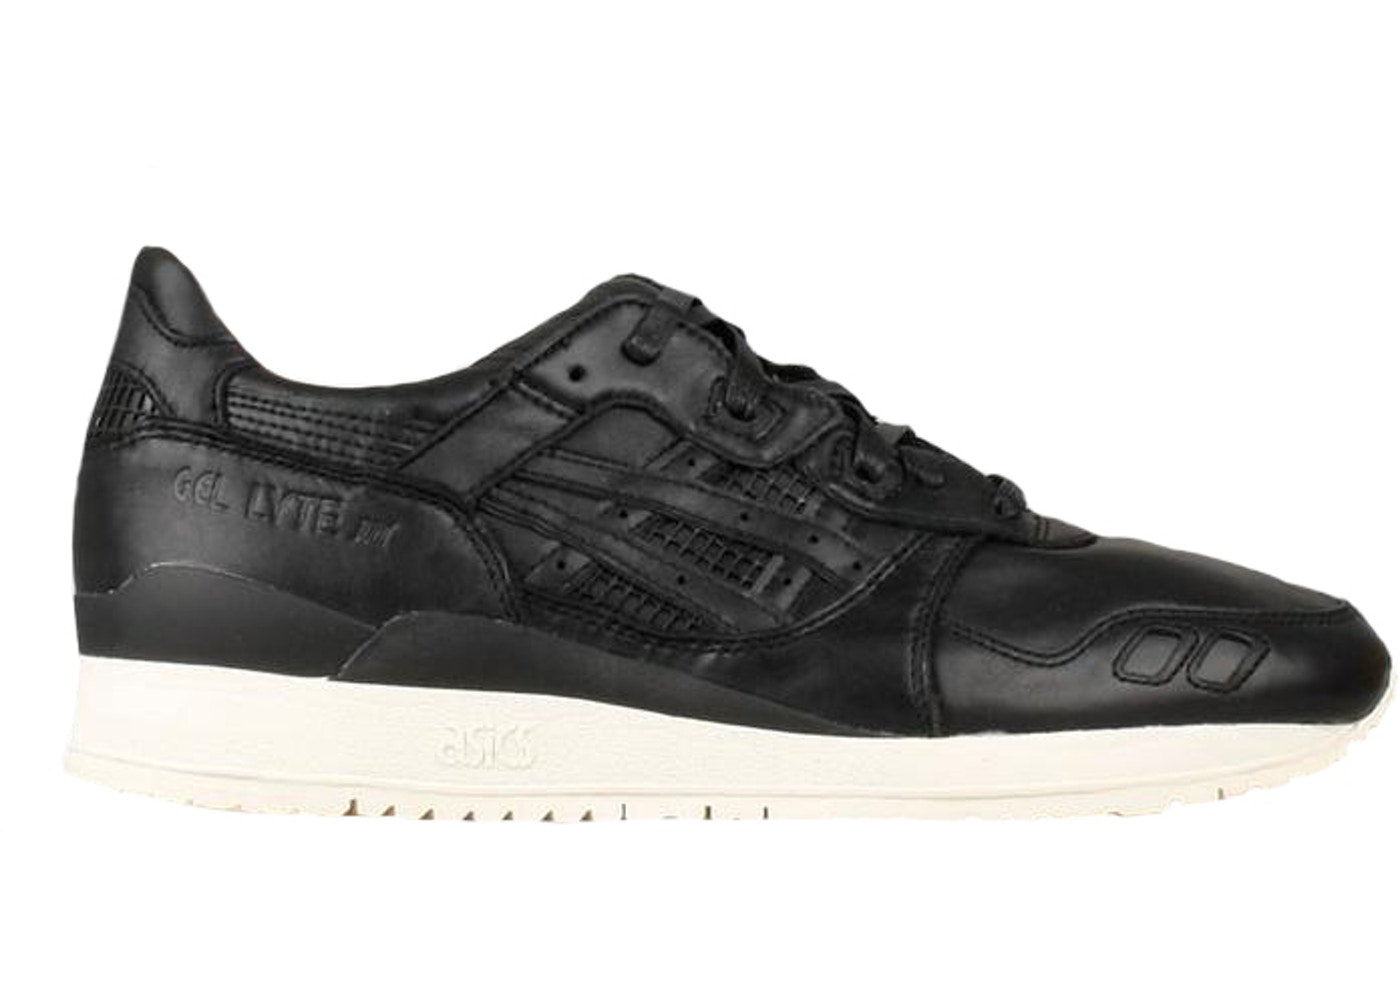 low priced 9e65d dbe15 ASICS Gel-Lyte III Kith Grand Opening